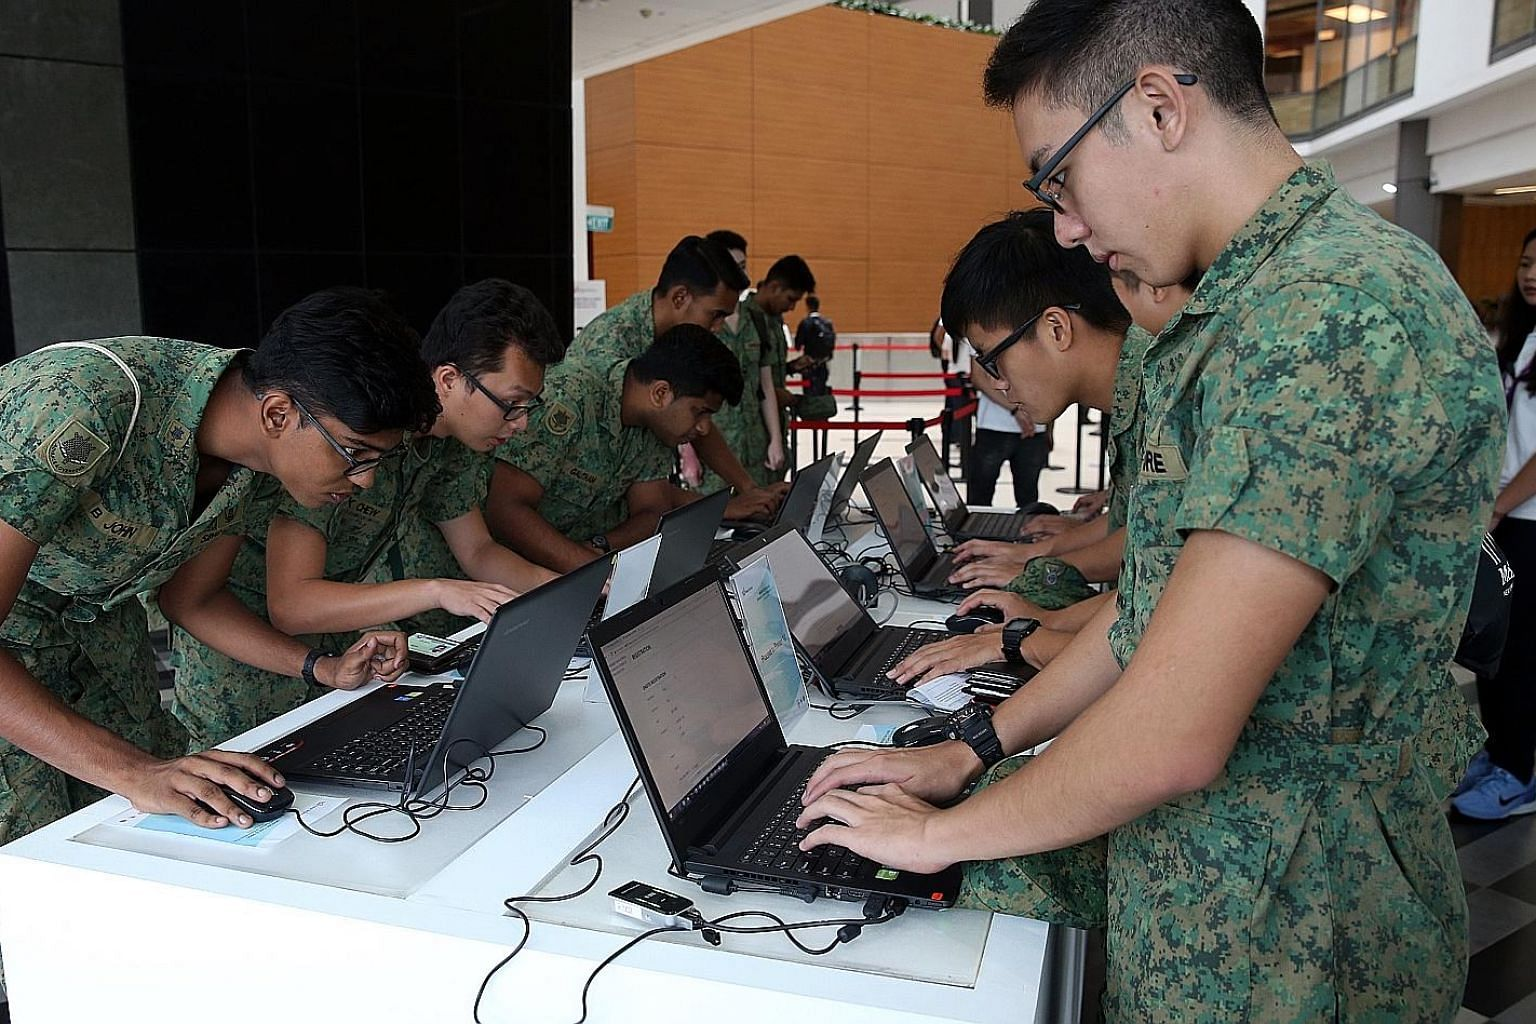 NSFs registering for the Enhanced Career and Education Fair at the Lifelong Learning Institute yesterday. The event was for NSFs about to complete their national service.